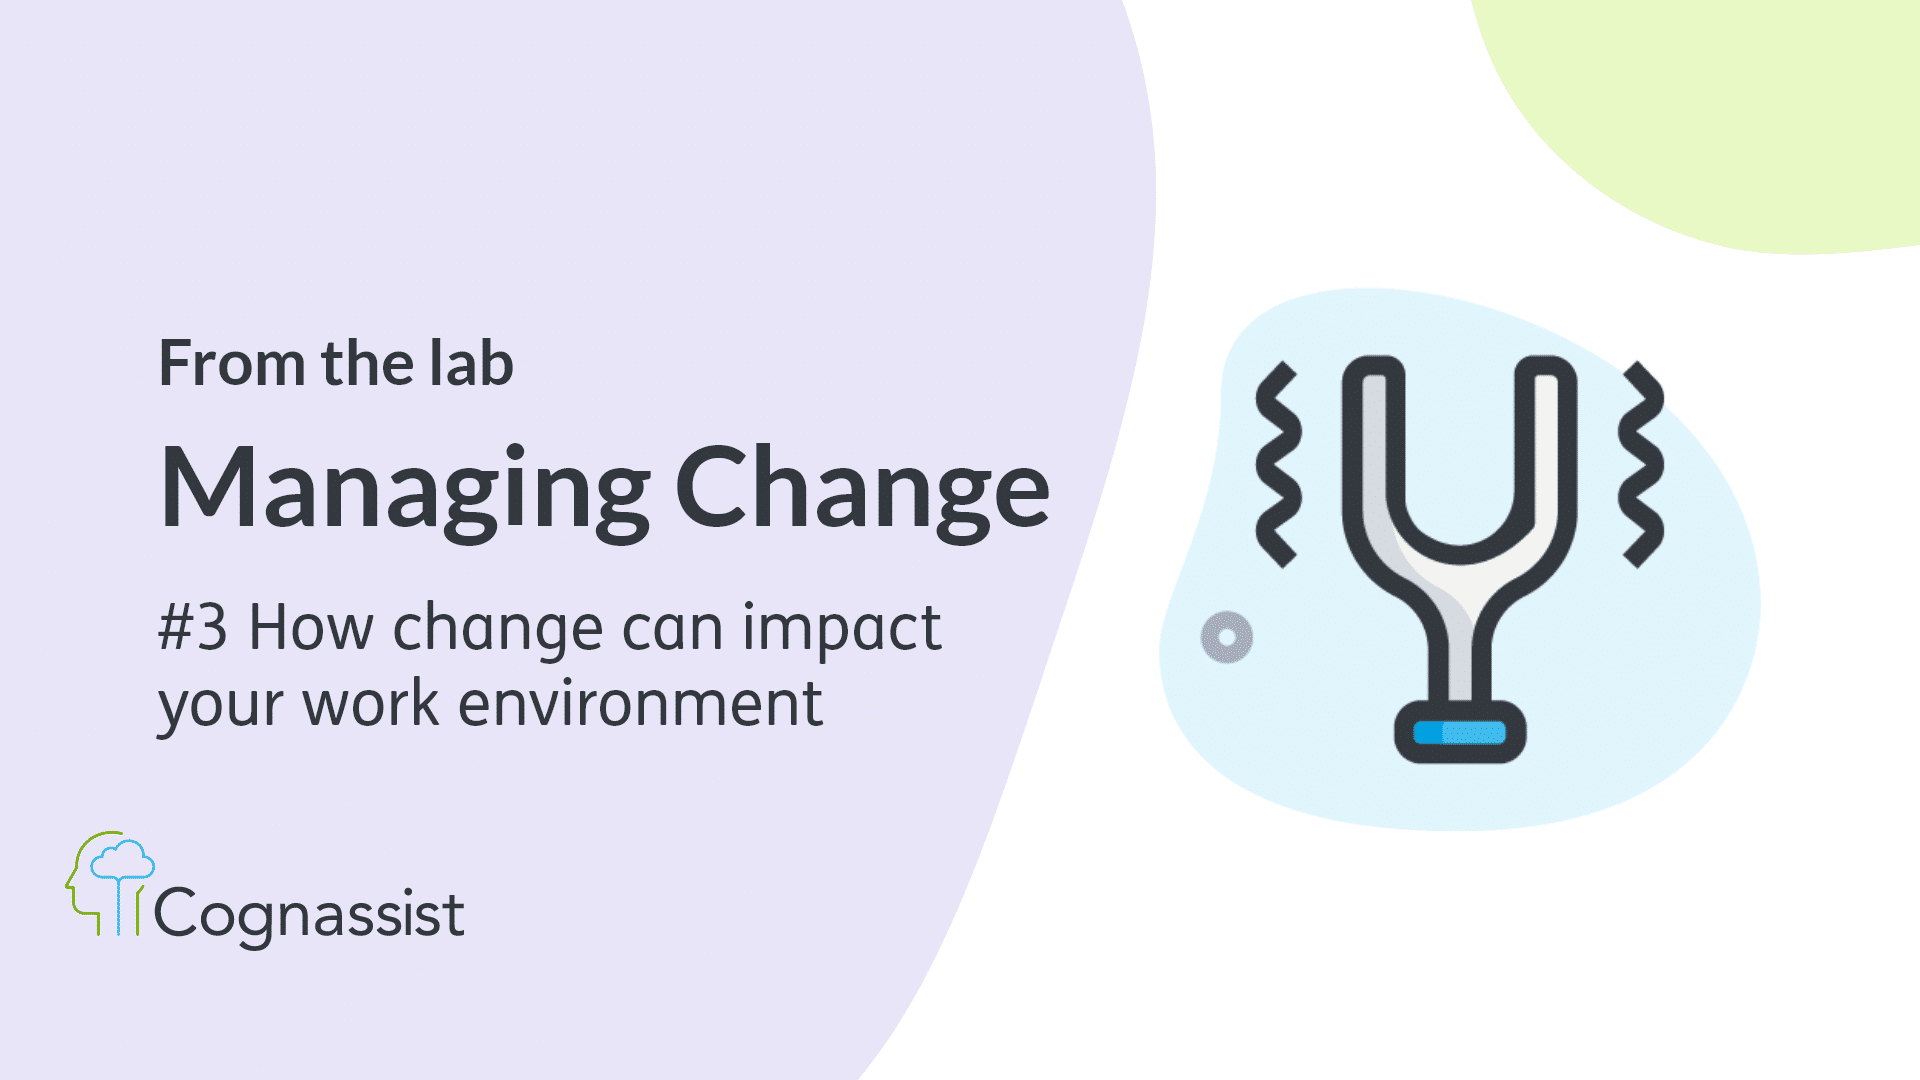 managing change, how change can impact your work environment